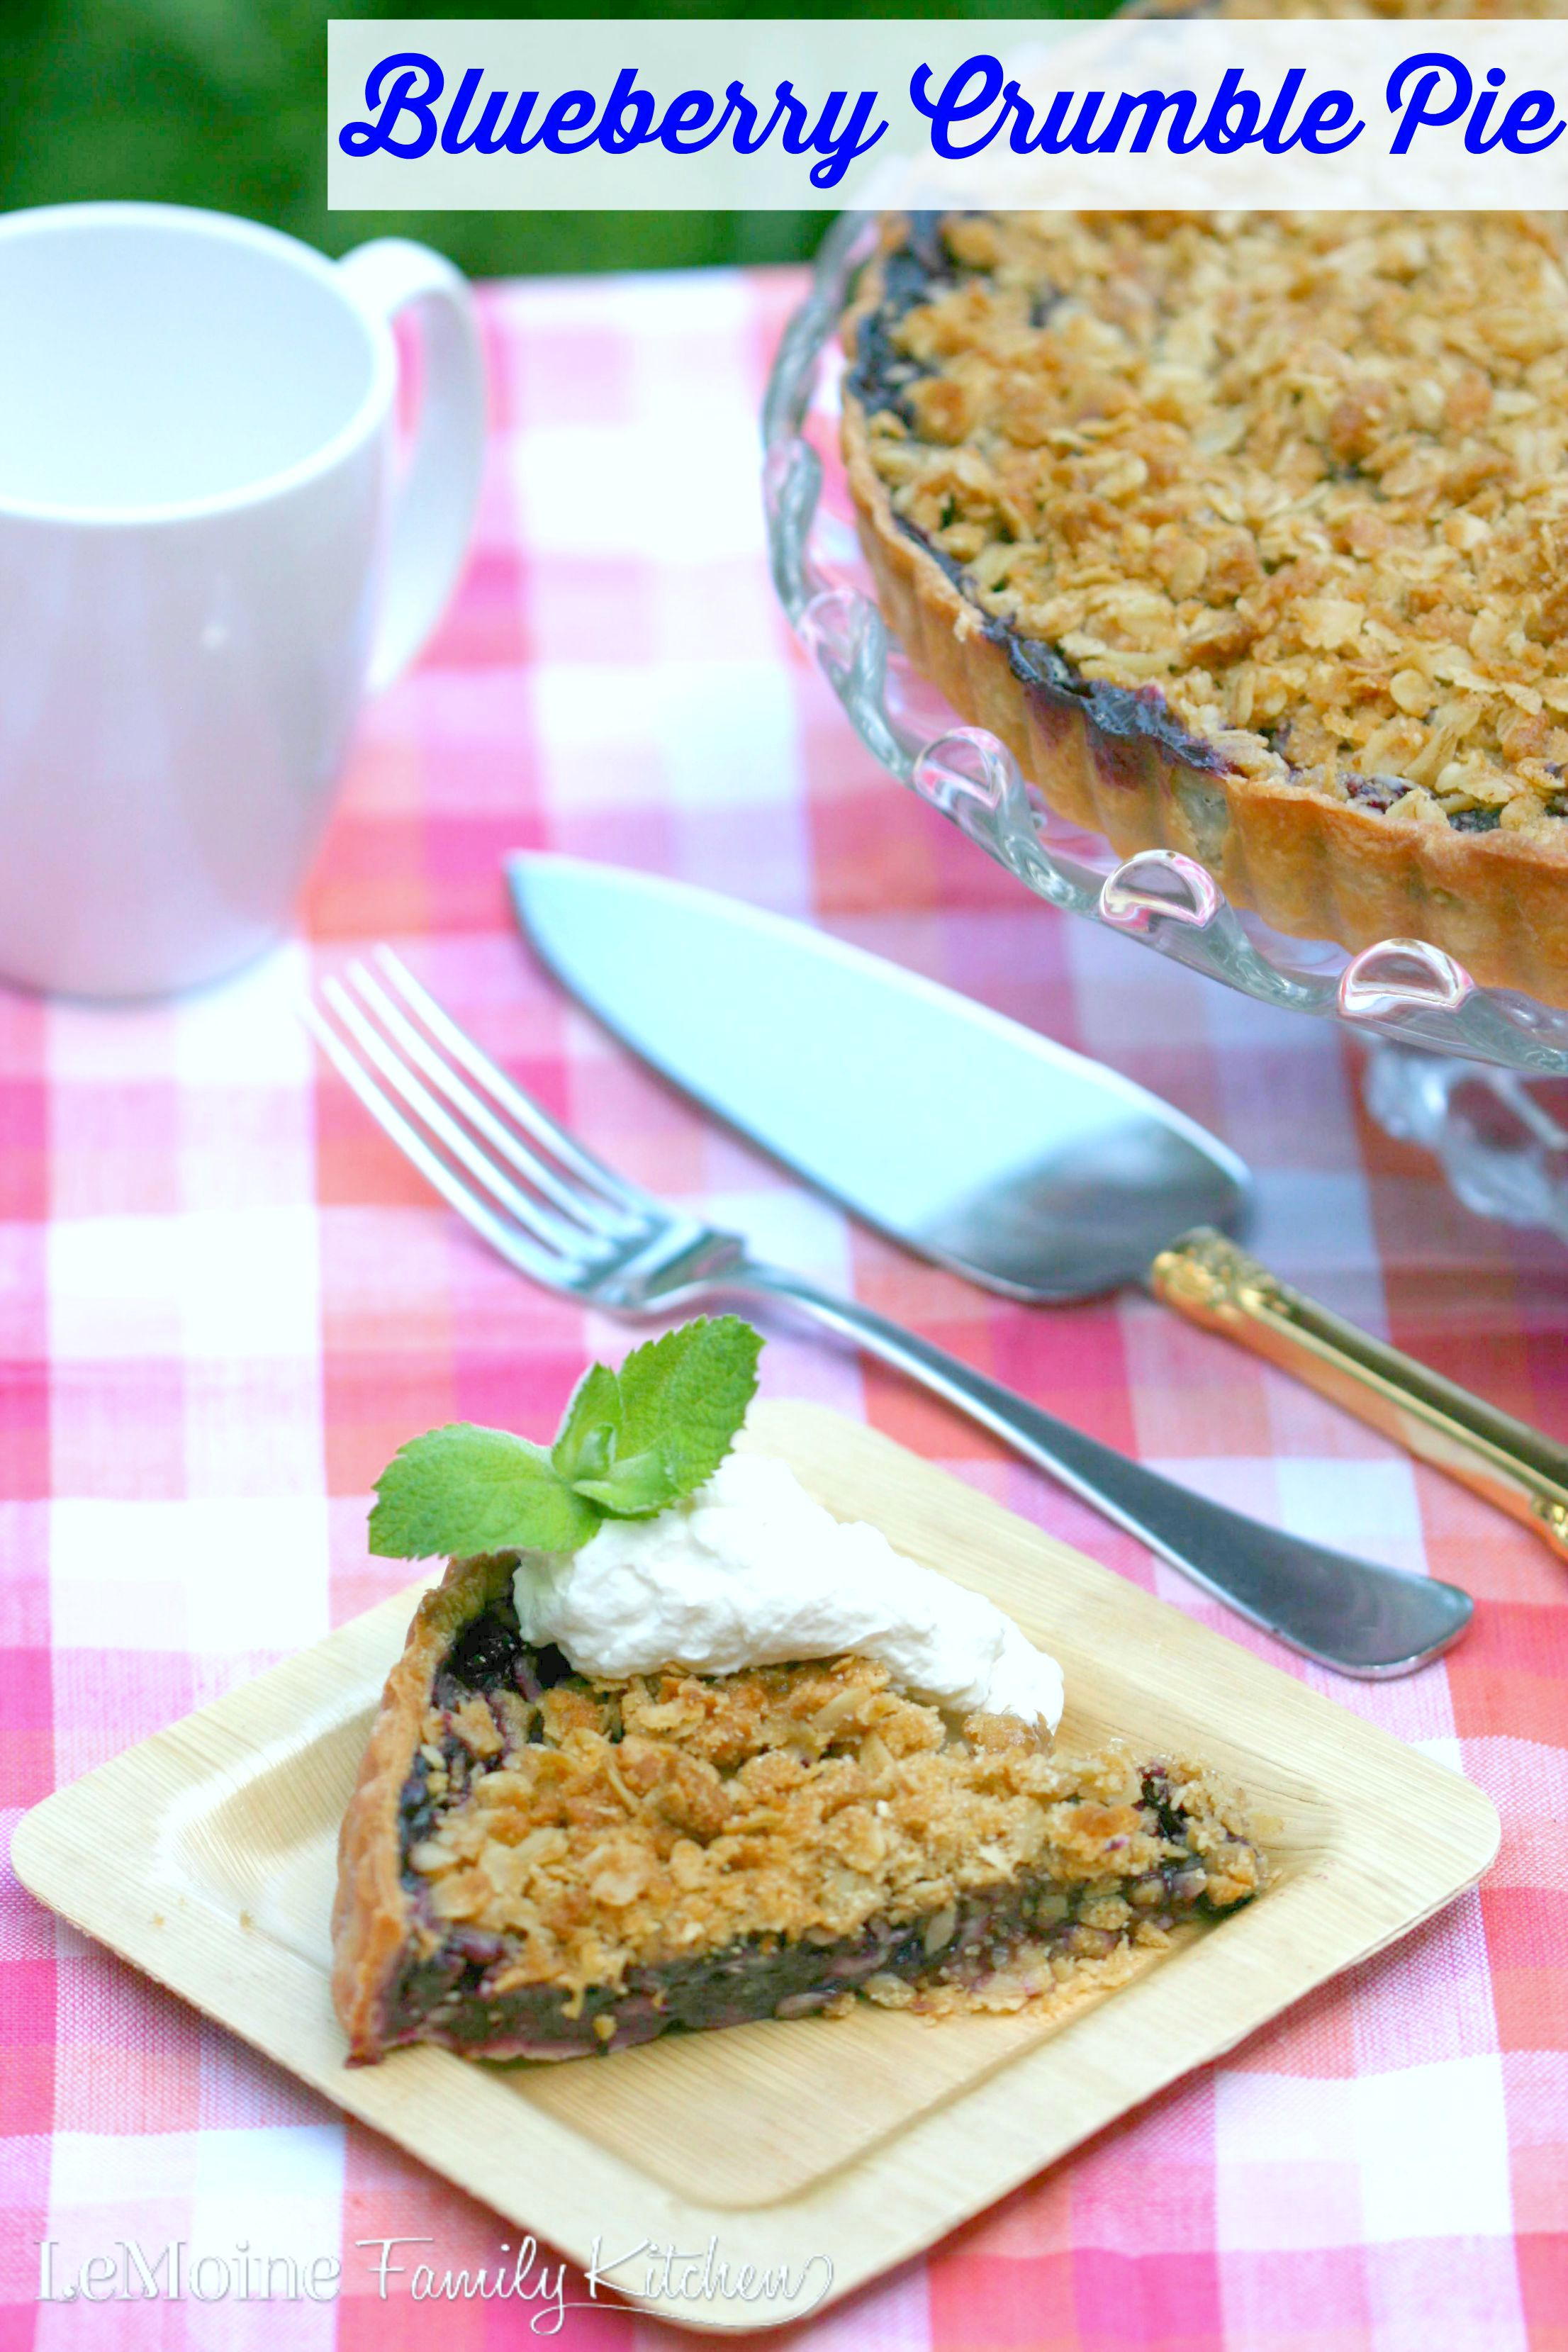 Blueberry Crumble Pie | LeMoine Family Kitchen